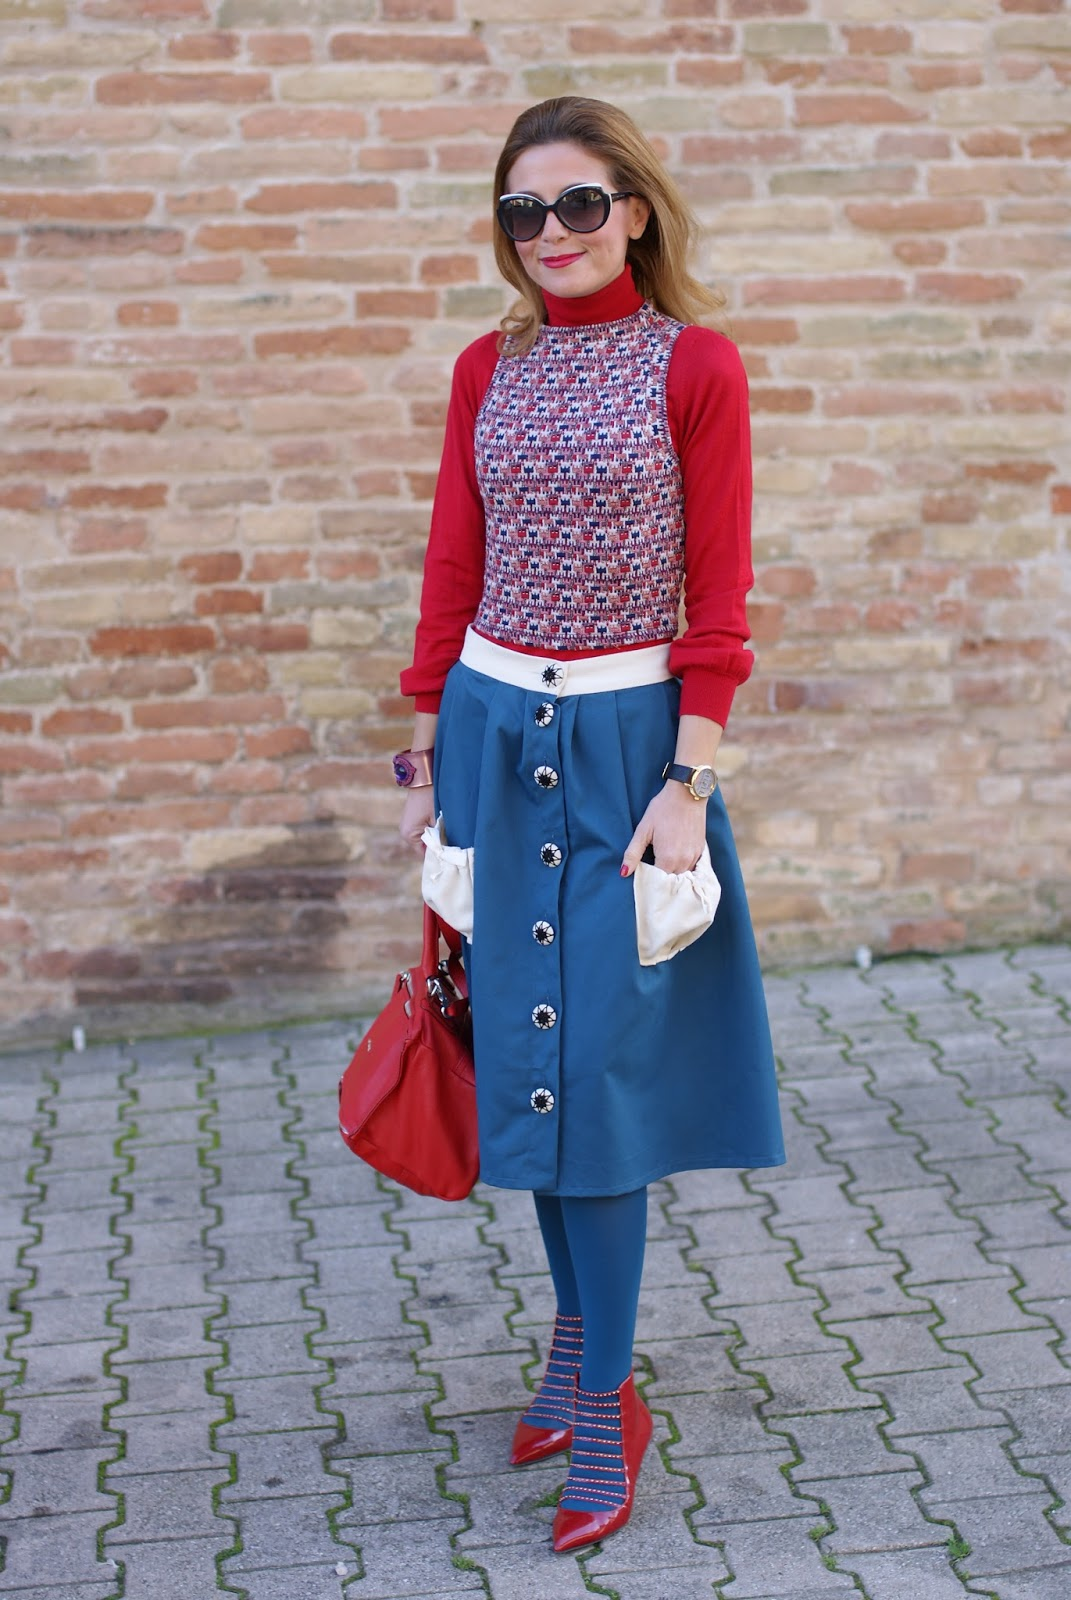 Opposés Complémentaires buttoned midi skirt, Le Silla heels and Gioya Bijoux bracelet on Fashion and Cookies fashion blog, fashion blogger style